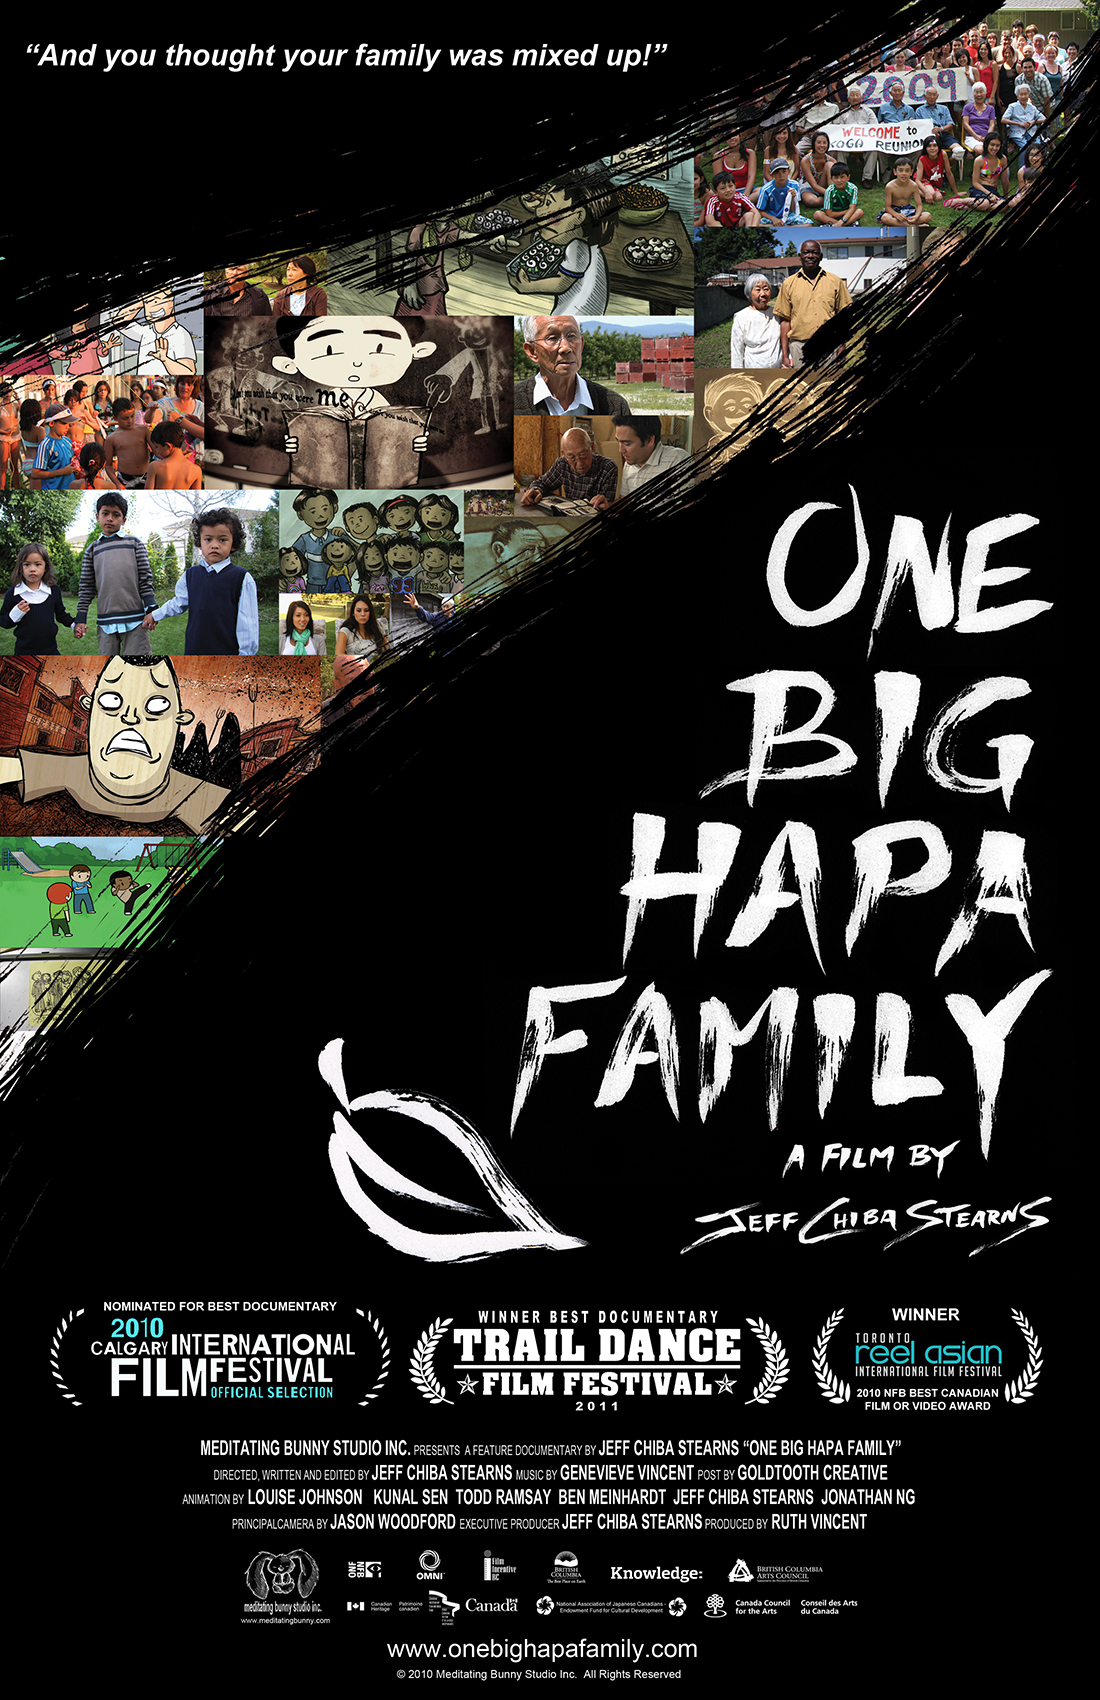 One Big Hapa Family